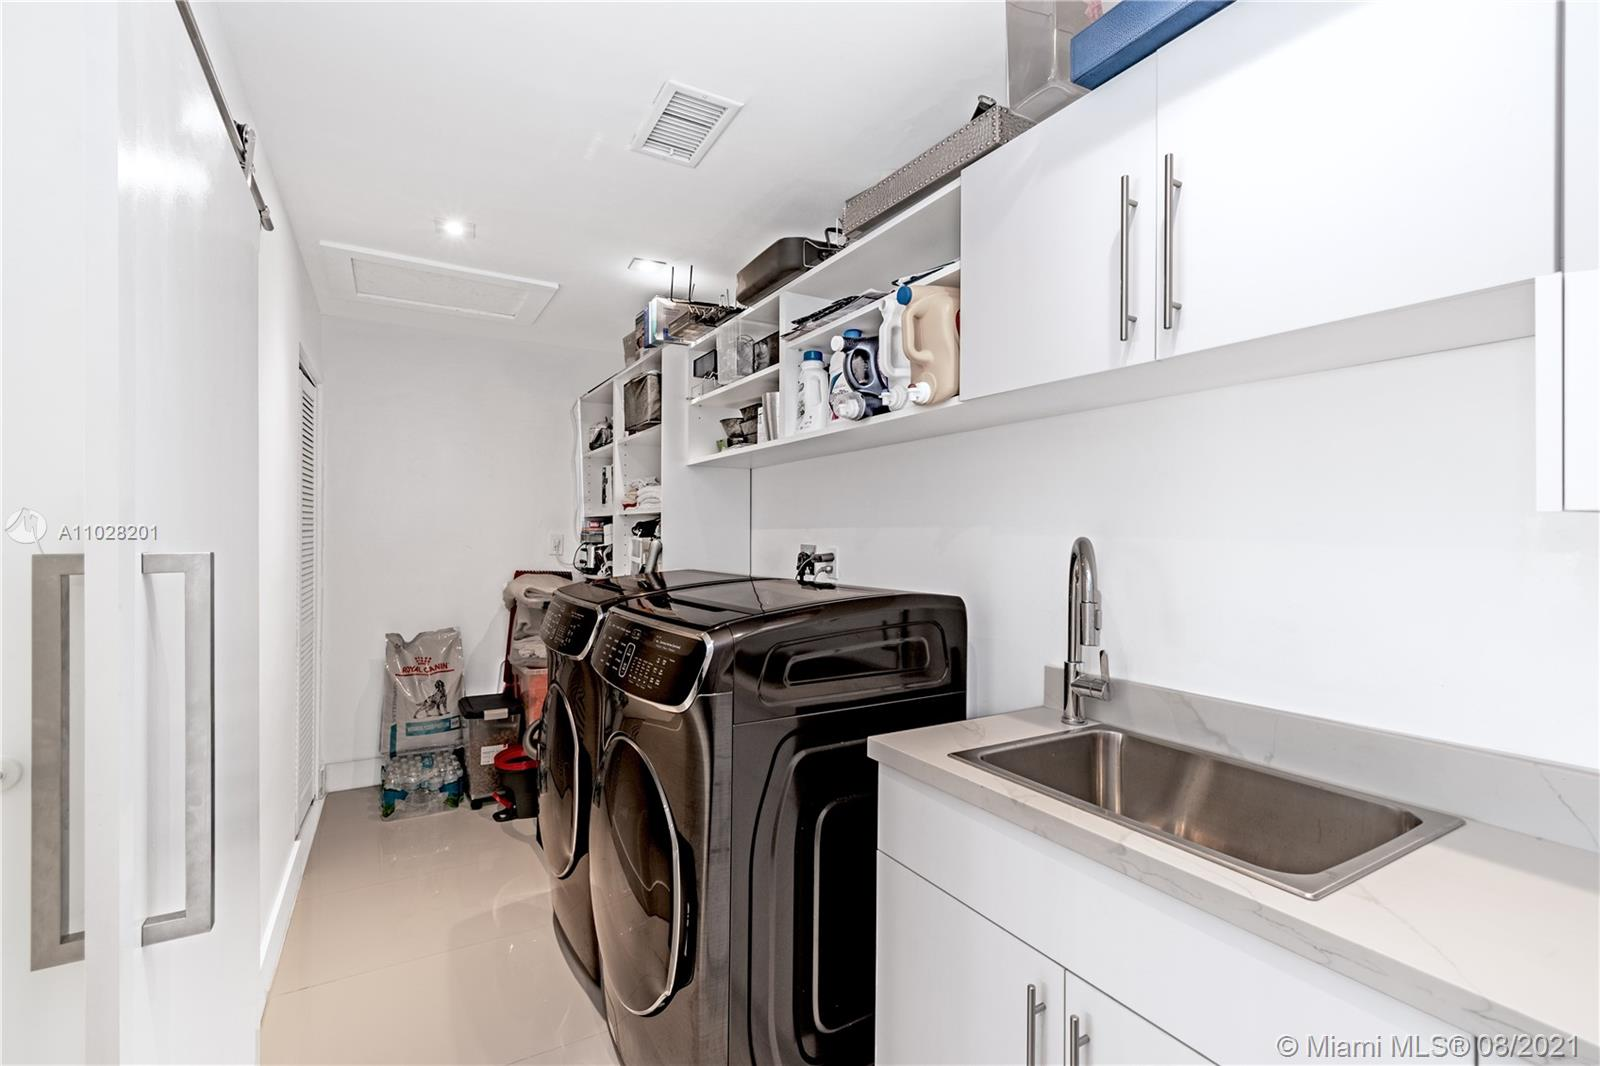 Large Laundry room with front smart technology Samsung front loaders and plenty of storage space.